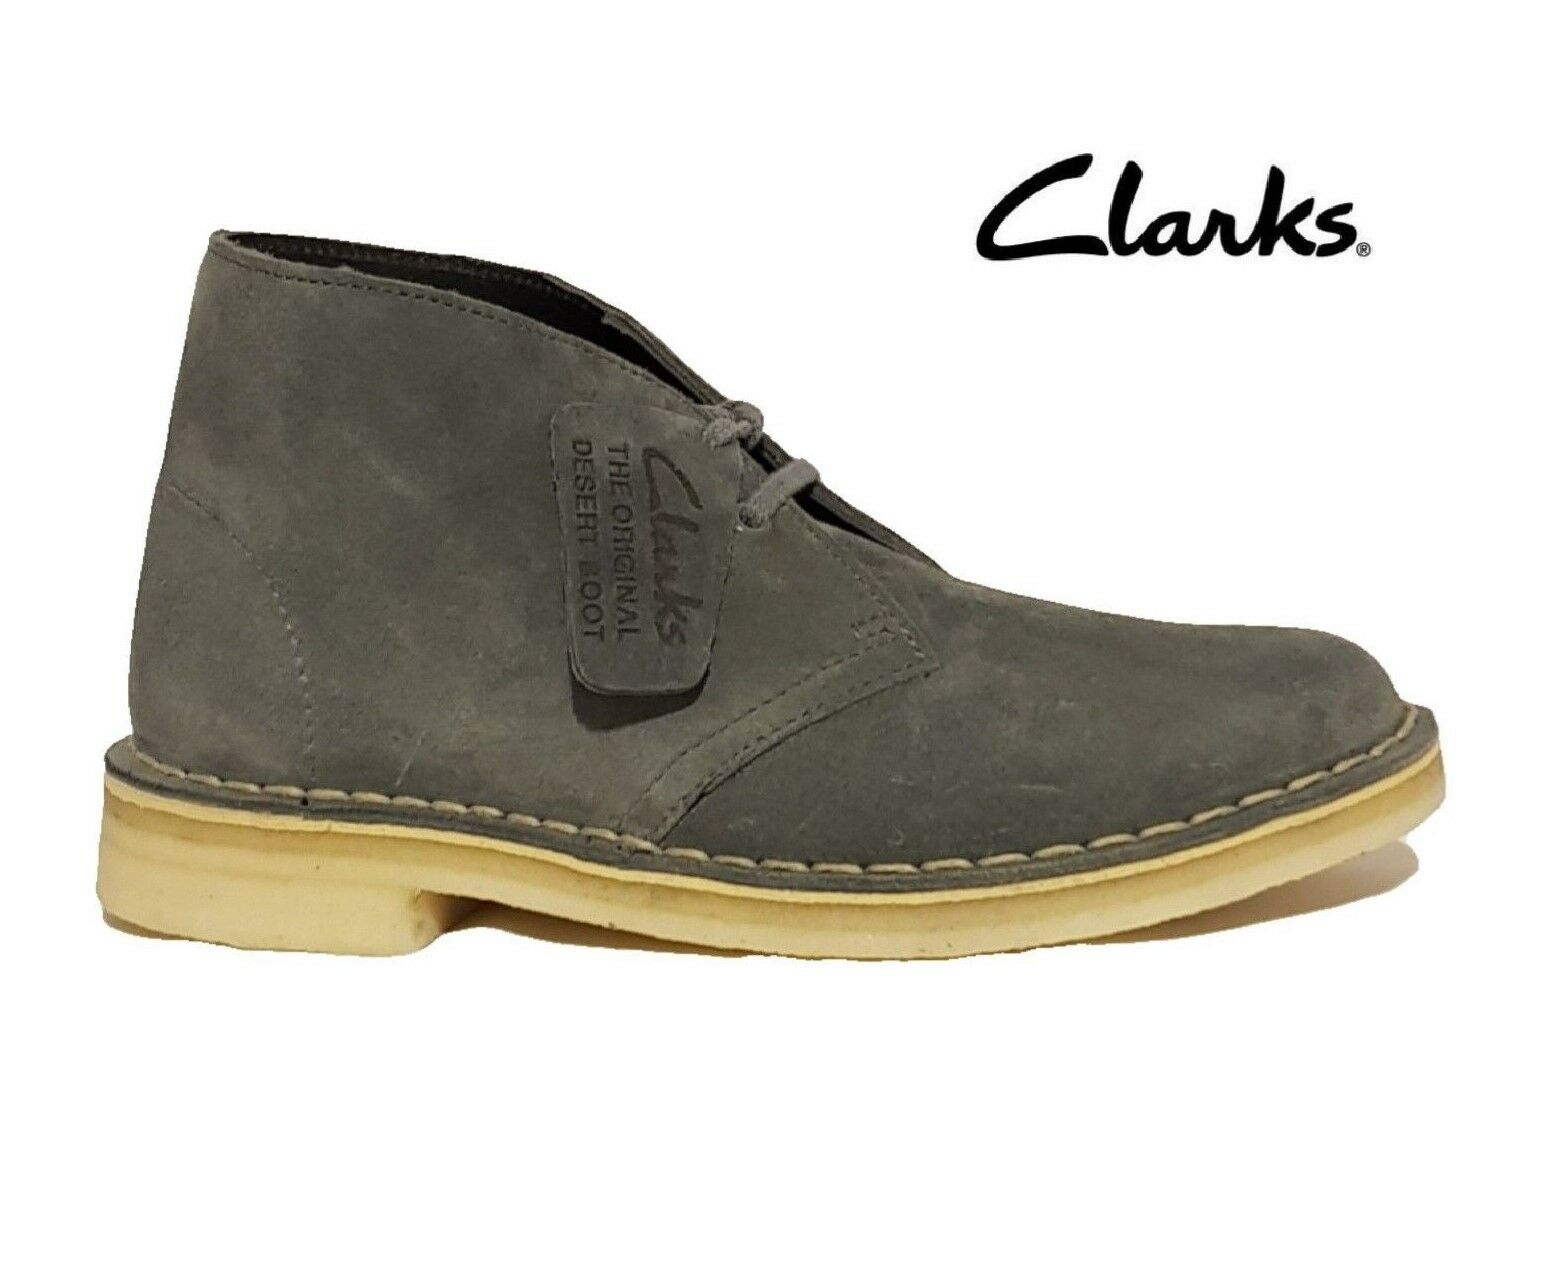 NEW SUEDE CLARKS ORIGINALS DESERT BOOTS GREY BLUE PINK SUEDE NEW LEATHER LADIES ANKLE BOOT 630279